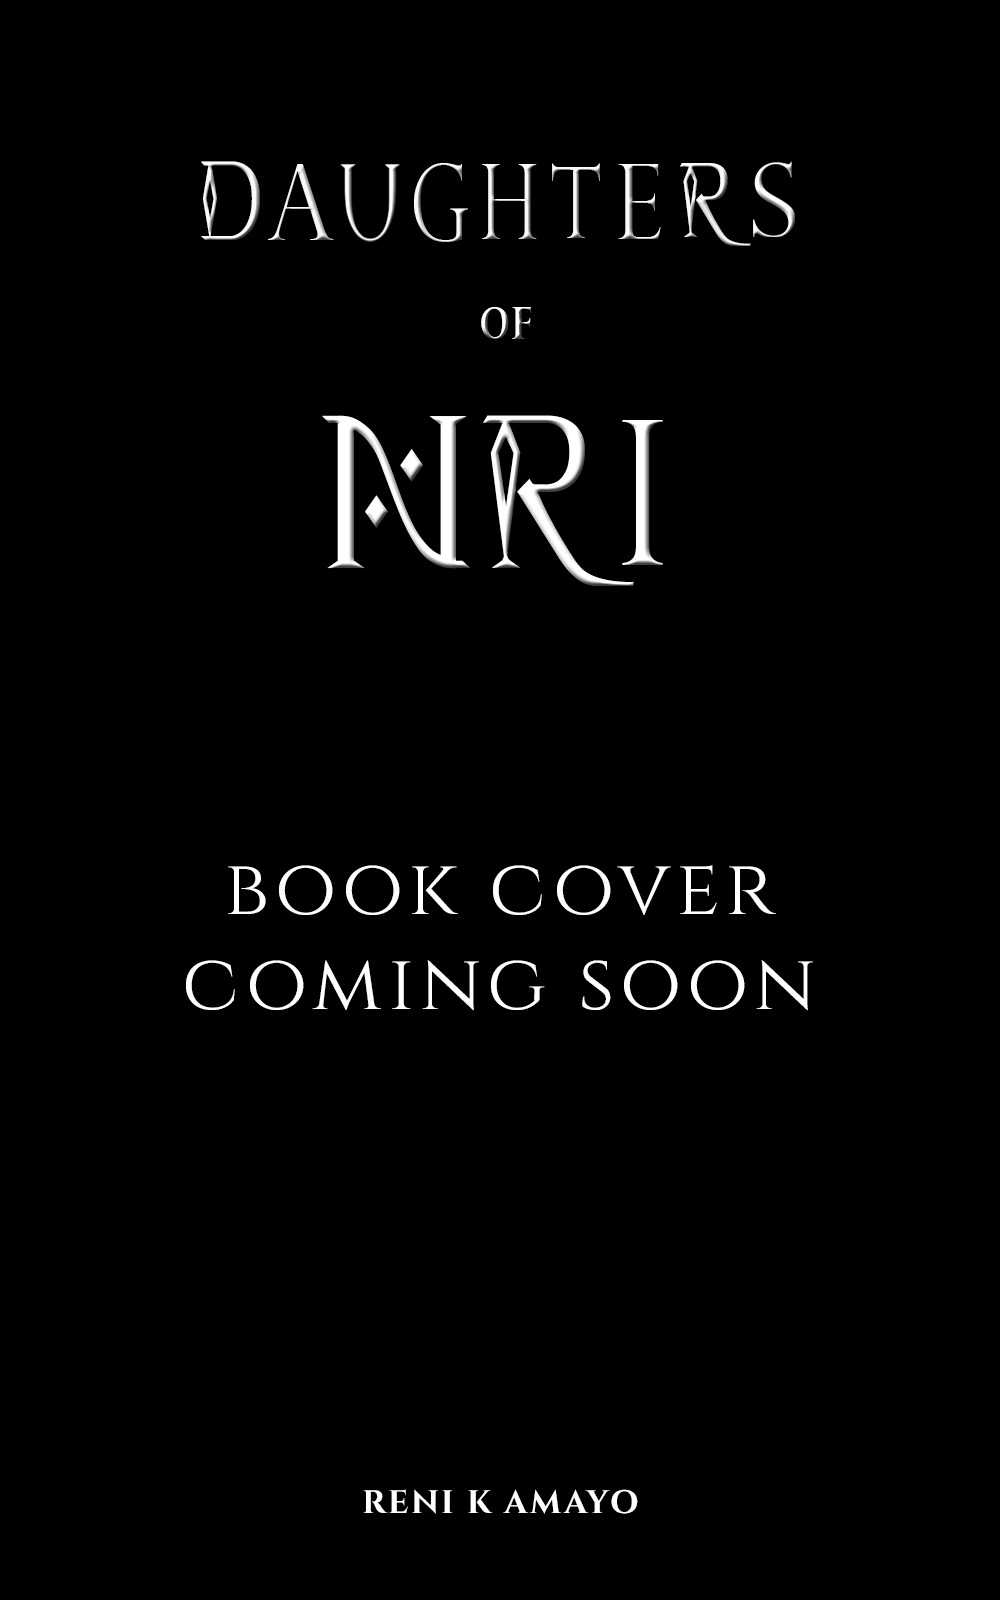 Watch this space! Daughter's Of Nri's Book Cover reveal is coming soon!